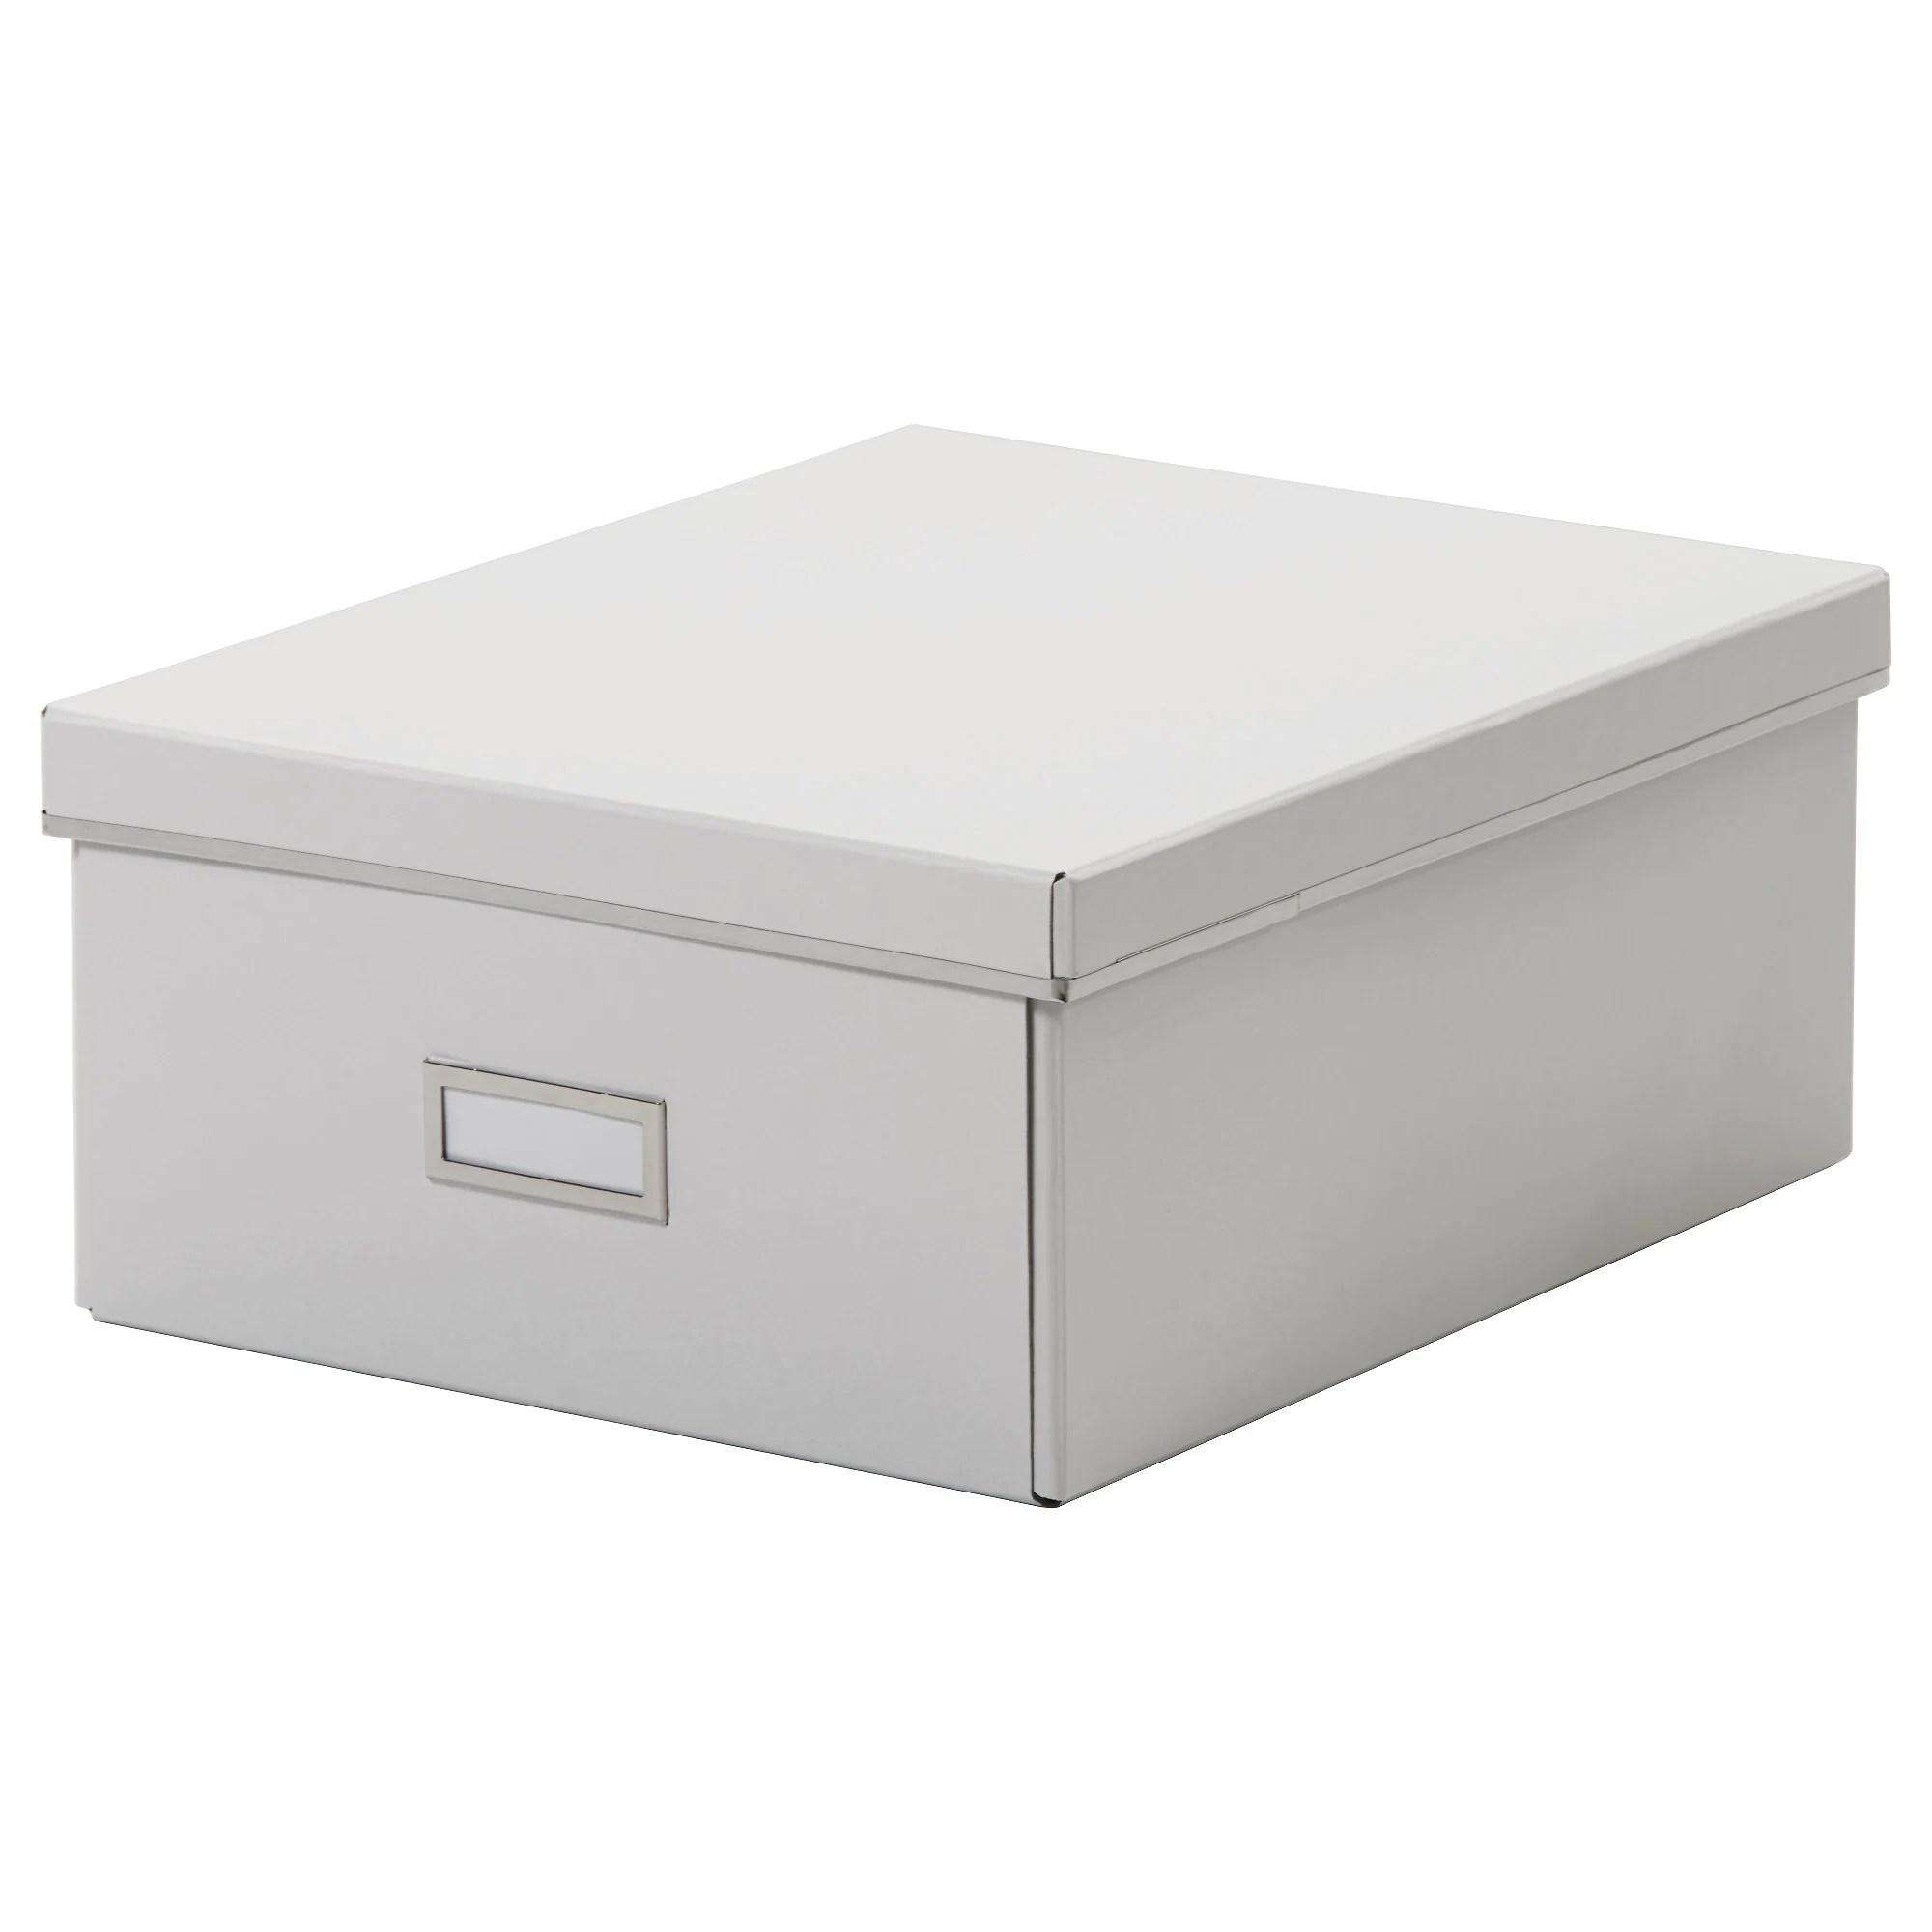 Ikea Box Holder SmÅrassel Box With Lid White